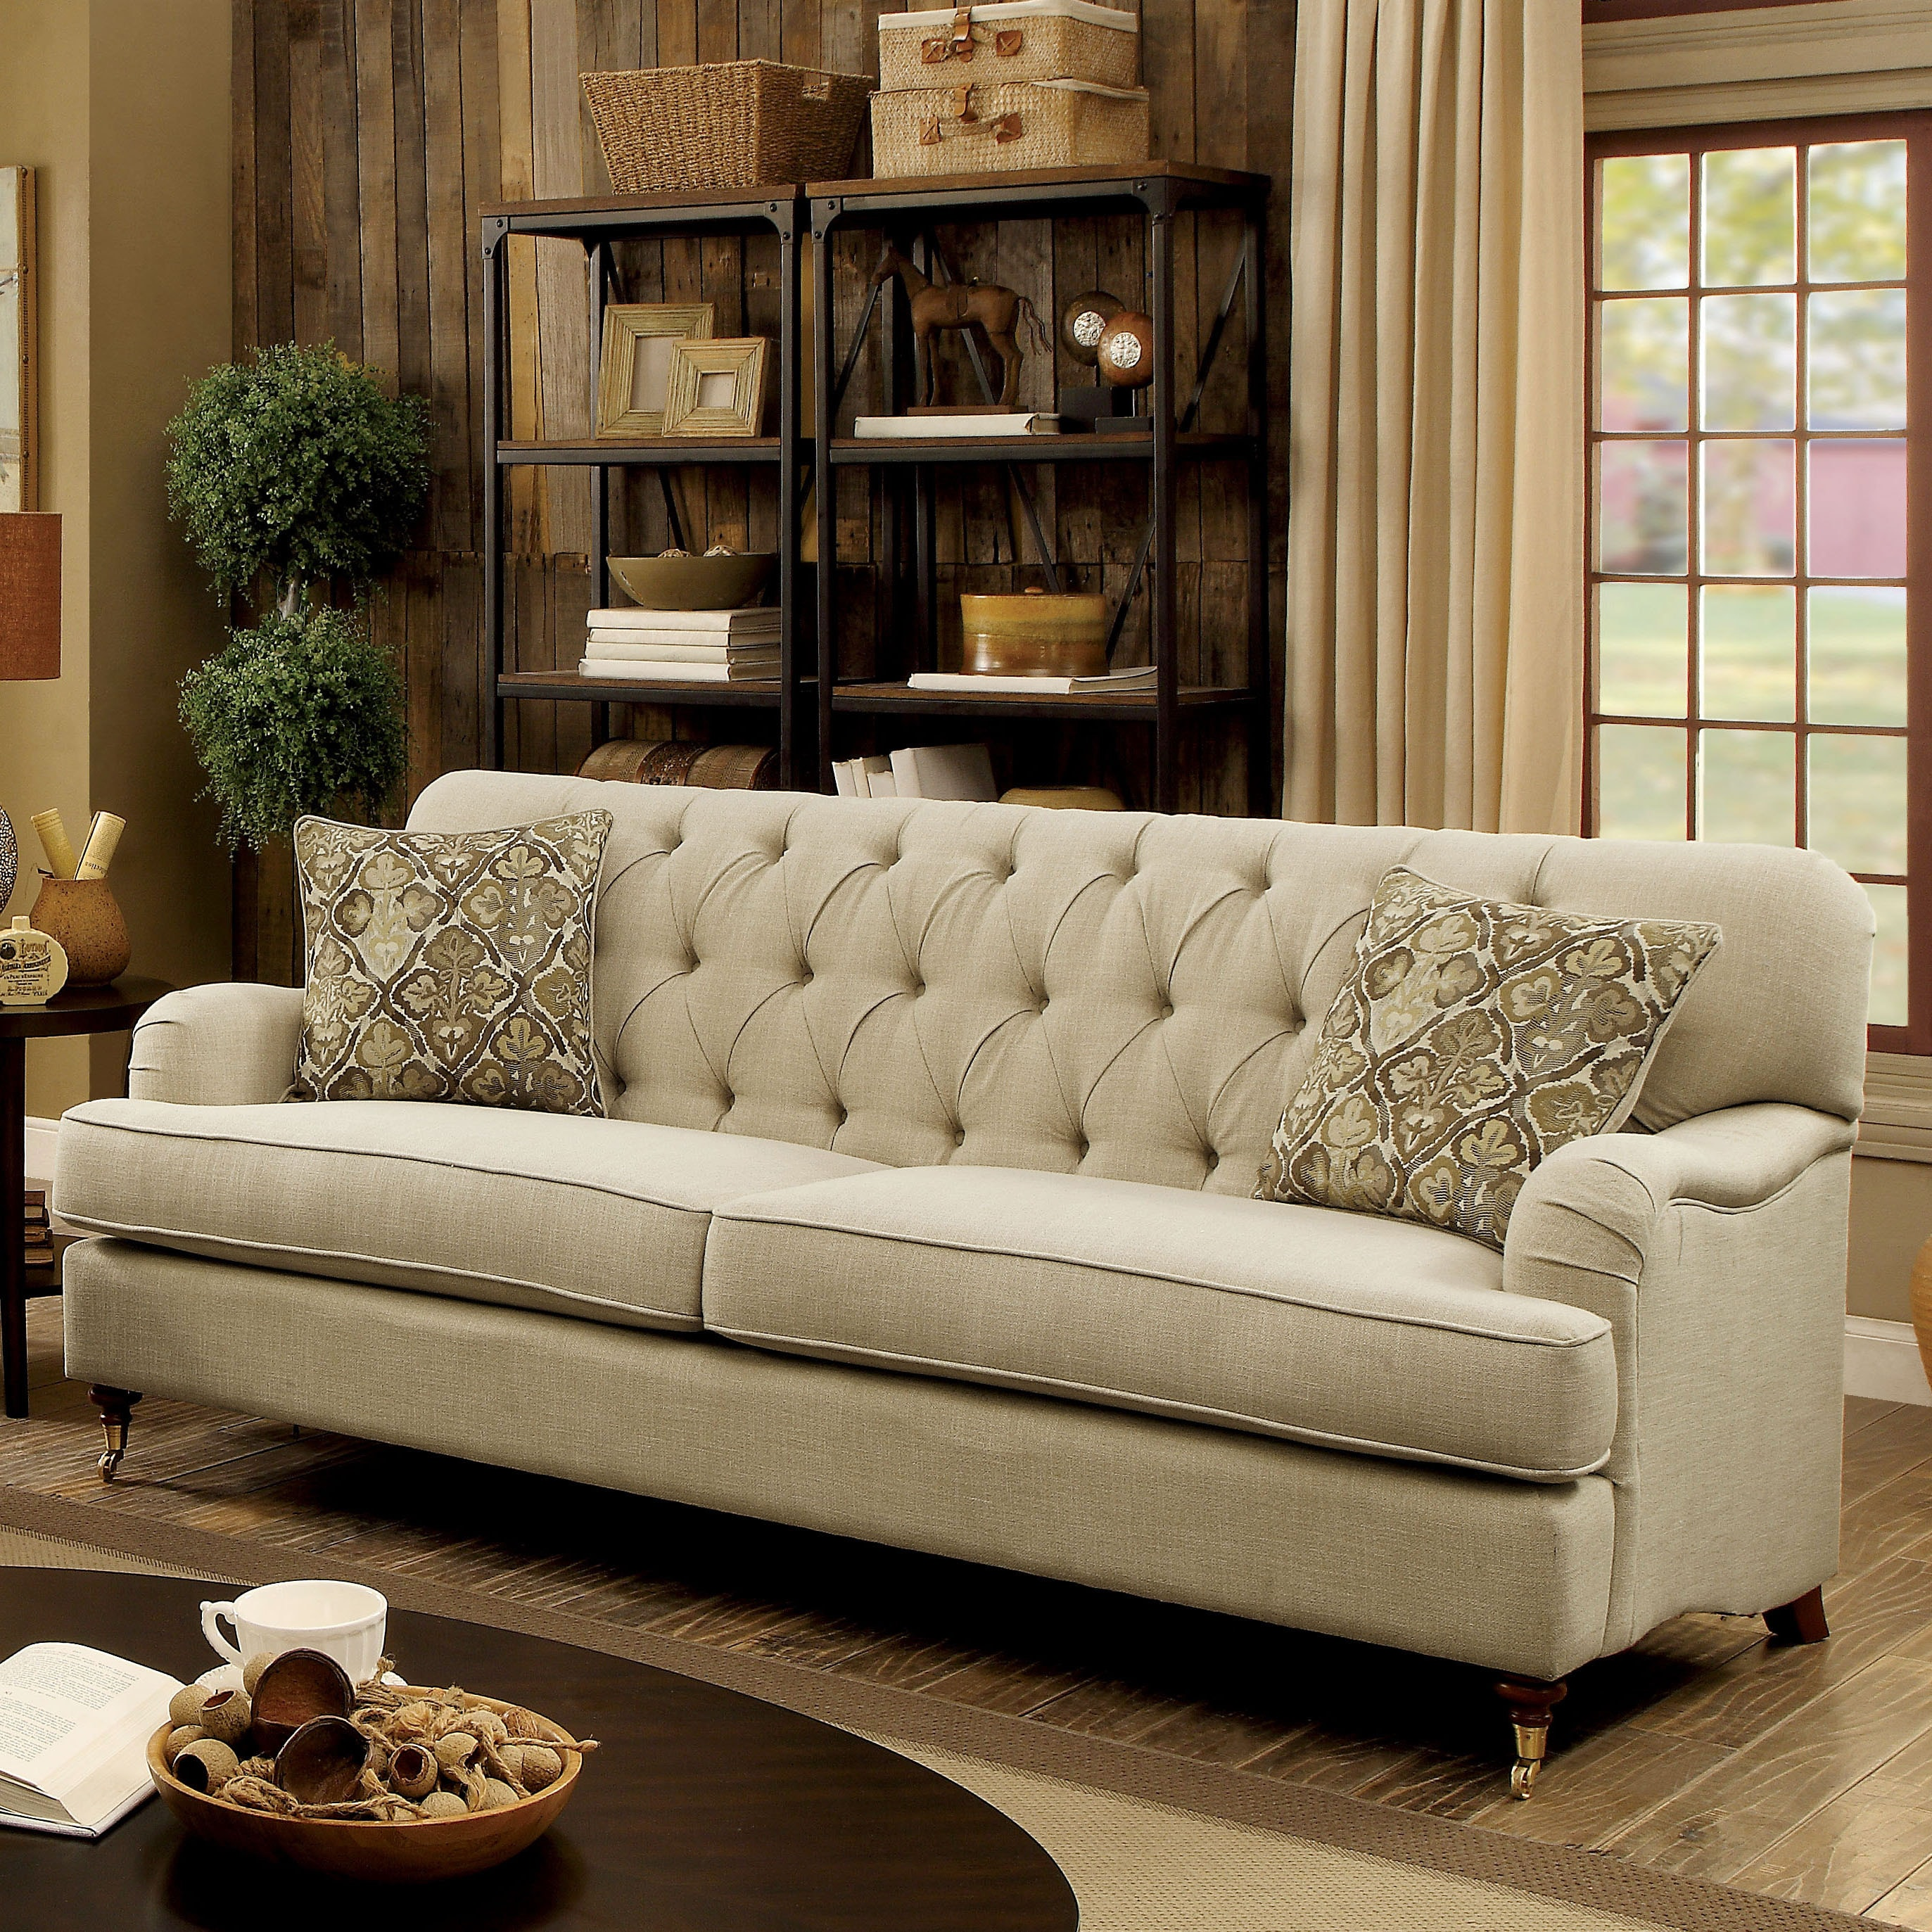 Furniture Of America Moor Traditional Beige Fabric Button Tufted Sofa